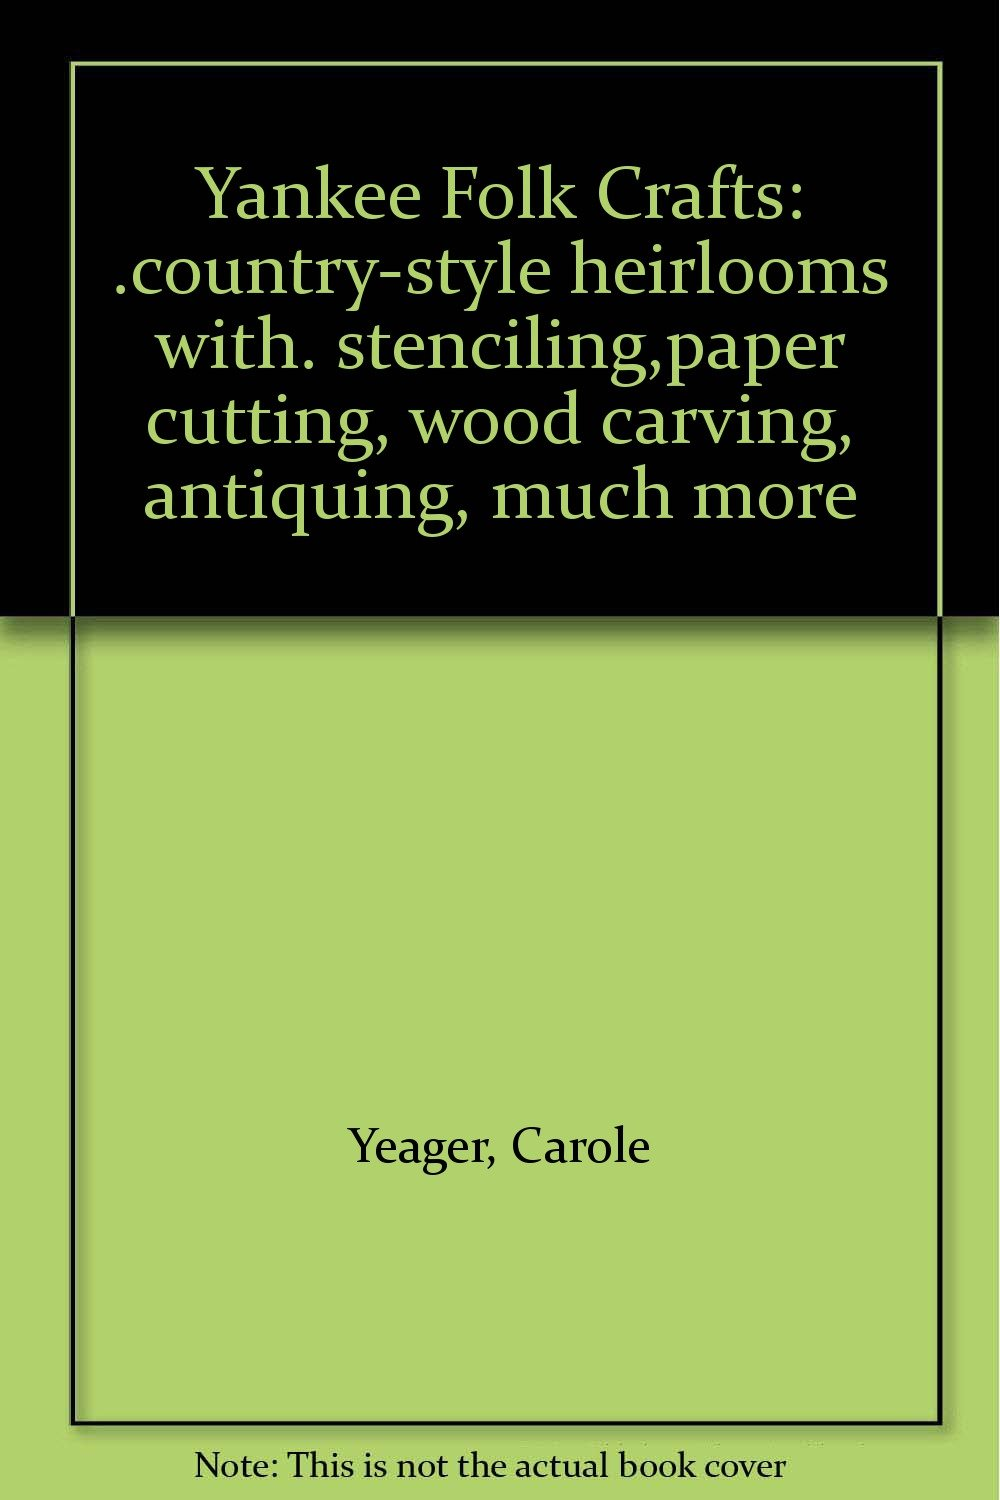 Yankee Folk Crafts: .country-style heirlooms with. stenciling,paper cutting, wood carving, antiquing, much more